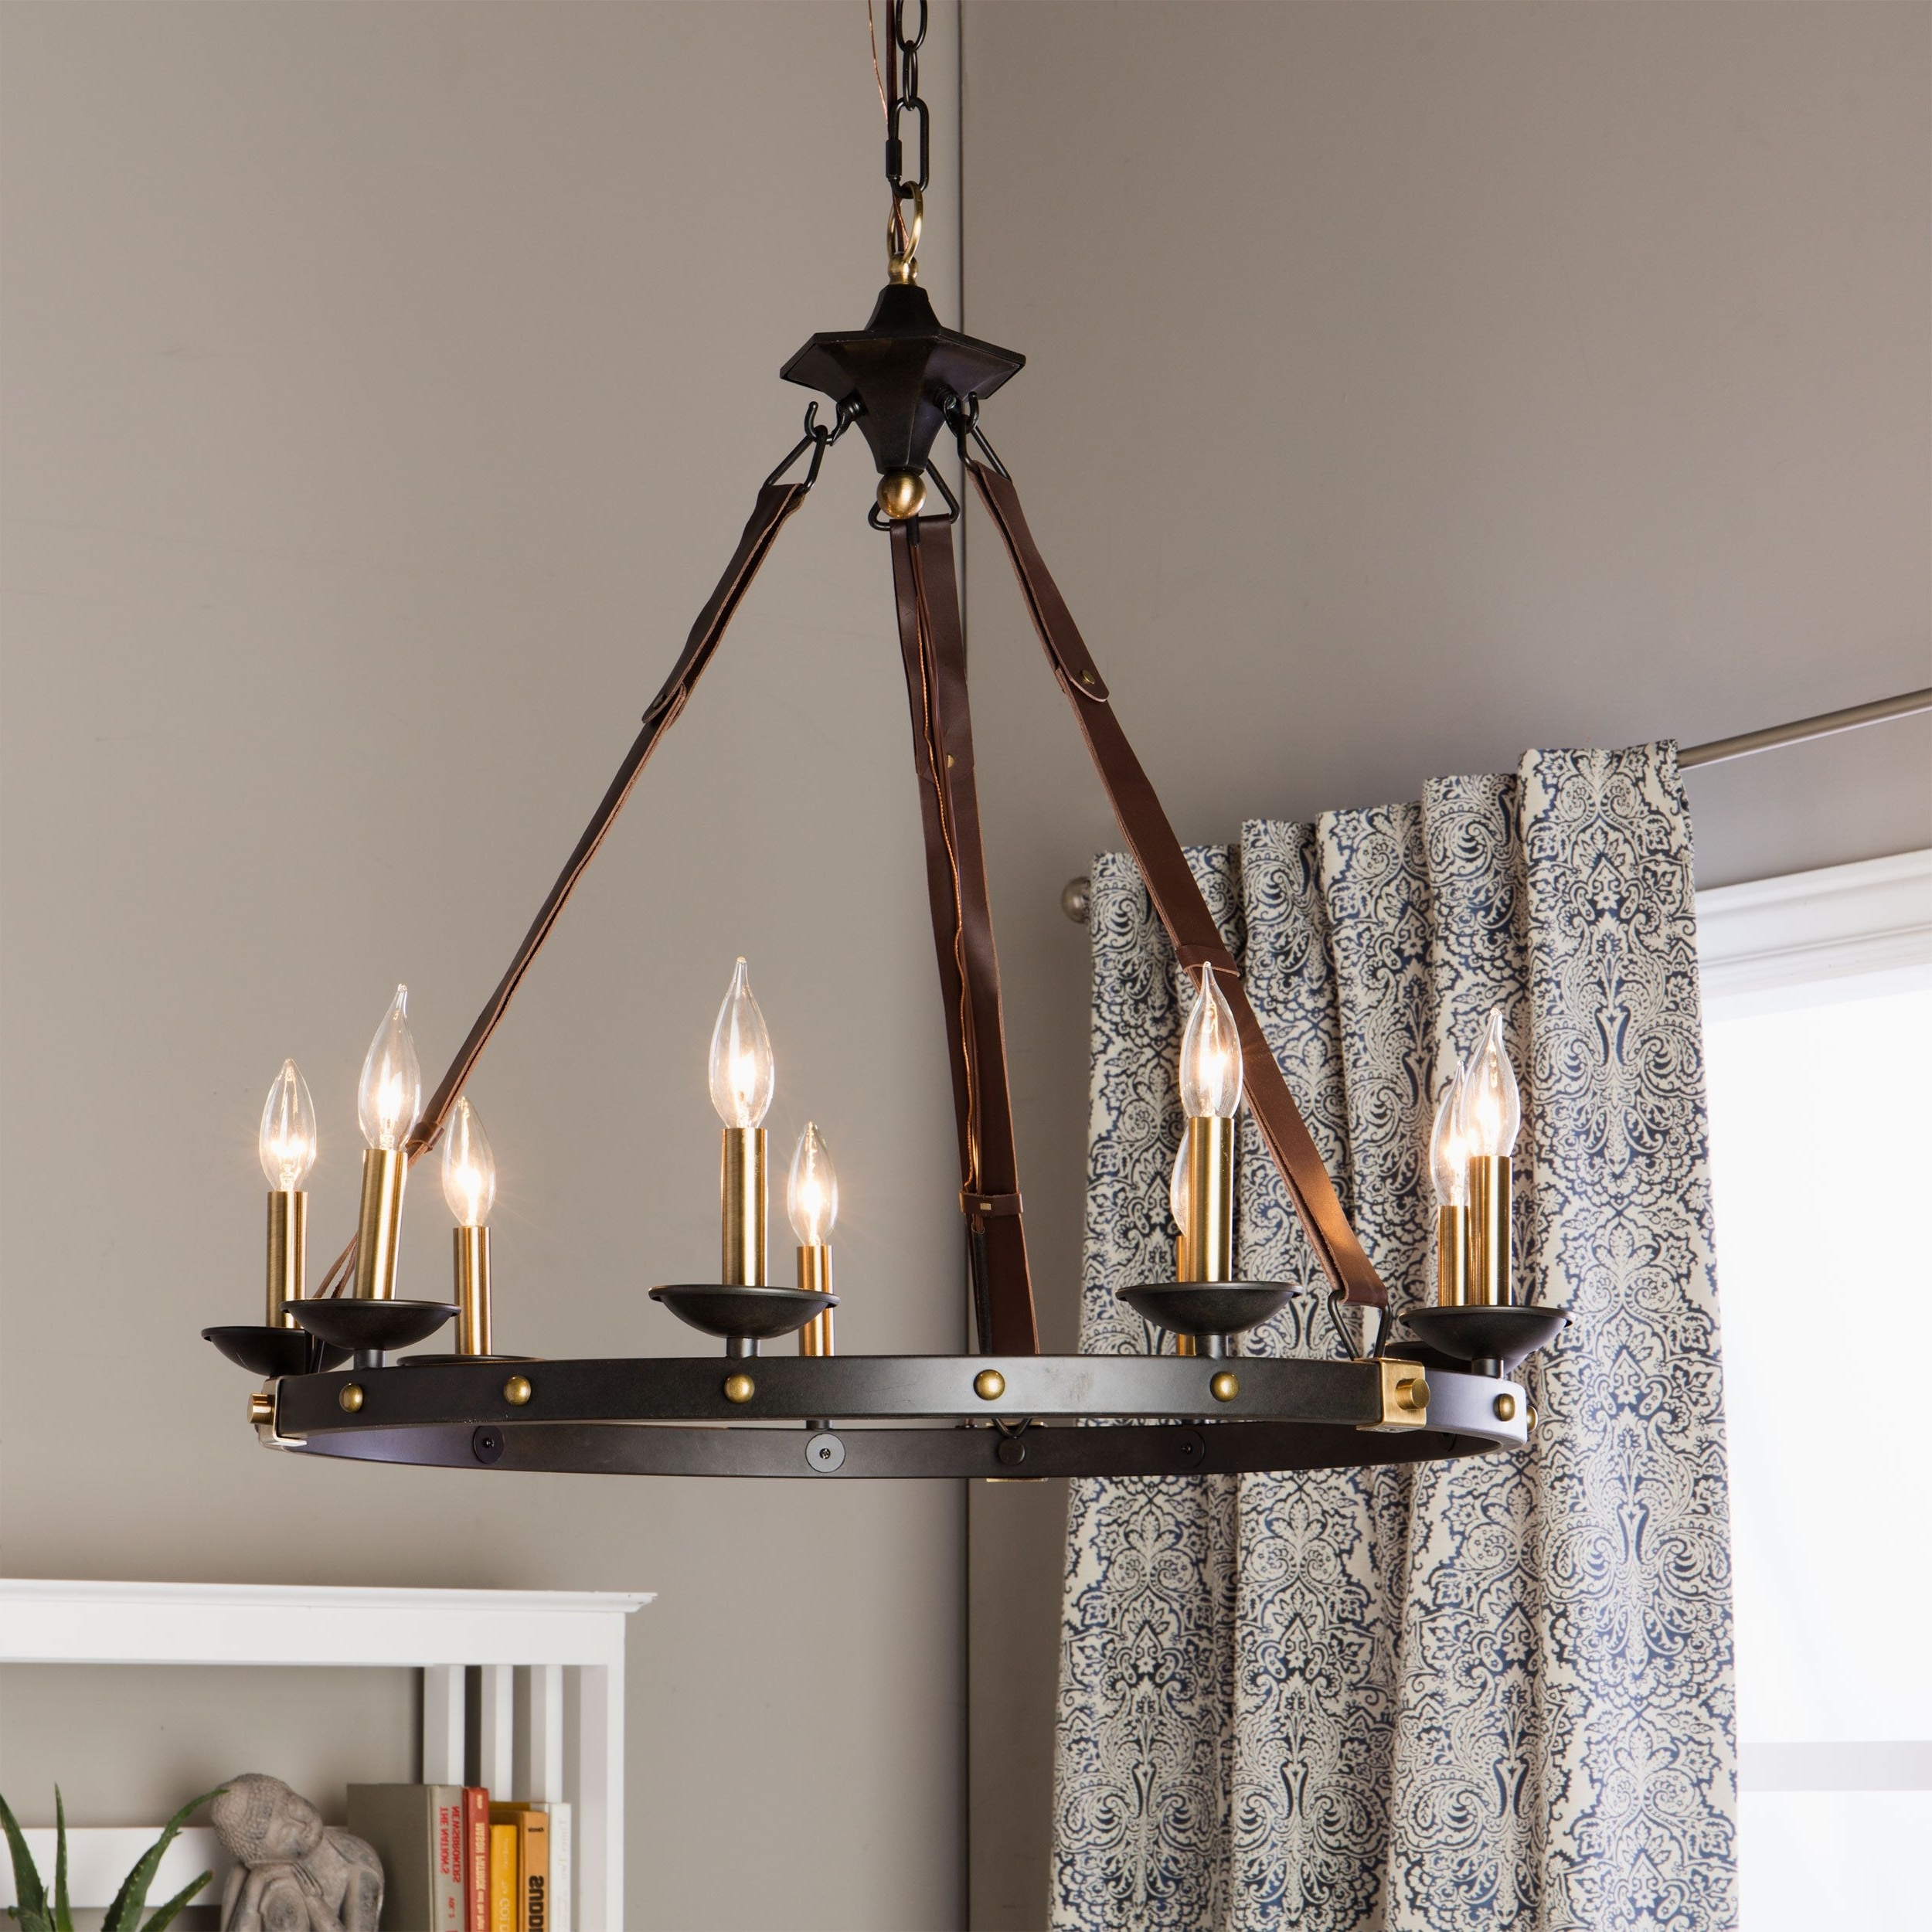 Large Black Chandelier Pertaining To 2018 Rustic Meets Contemporary In This Beautiful Cavalier Chandelier (View 9 of 20)